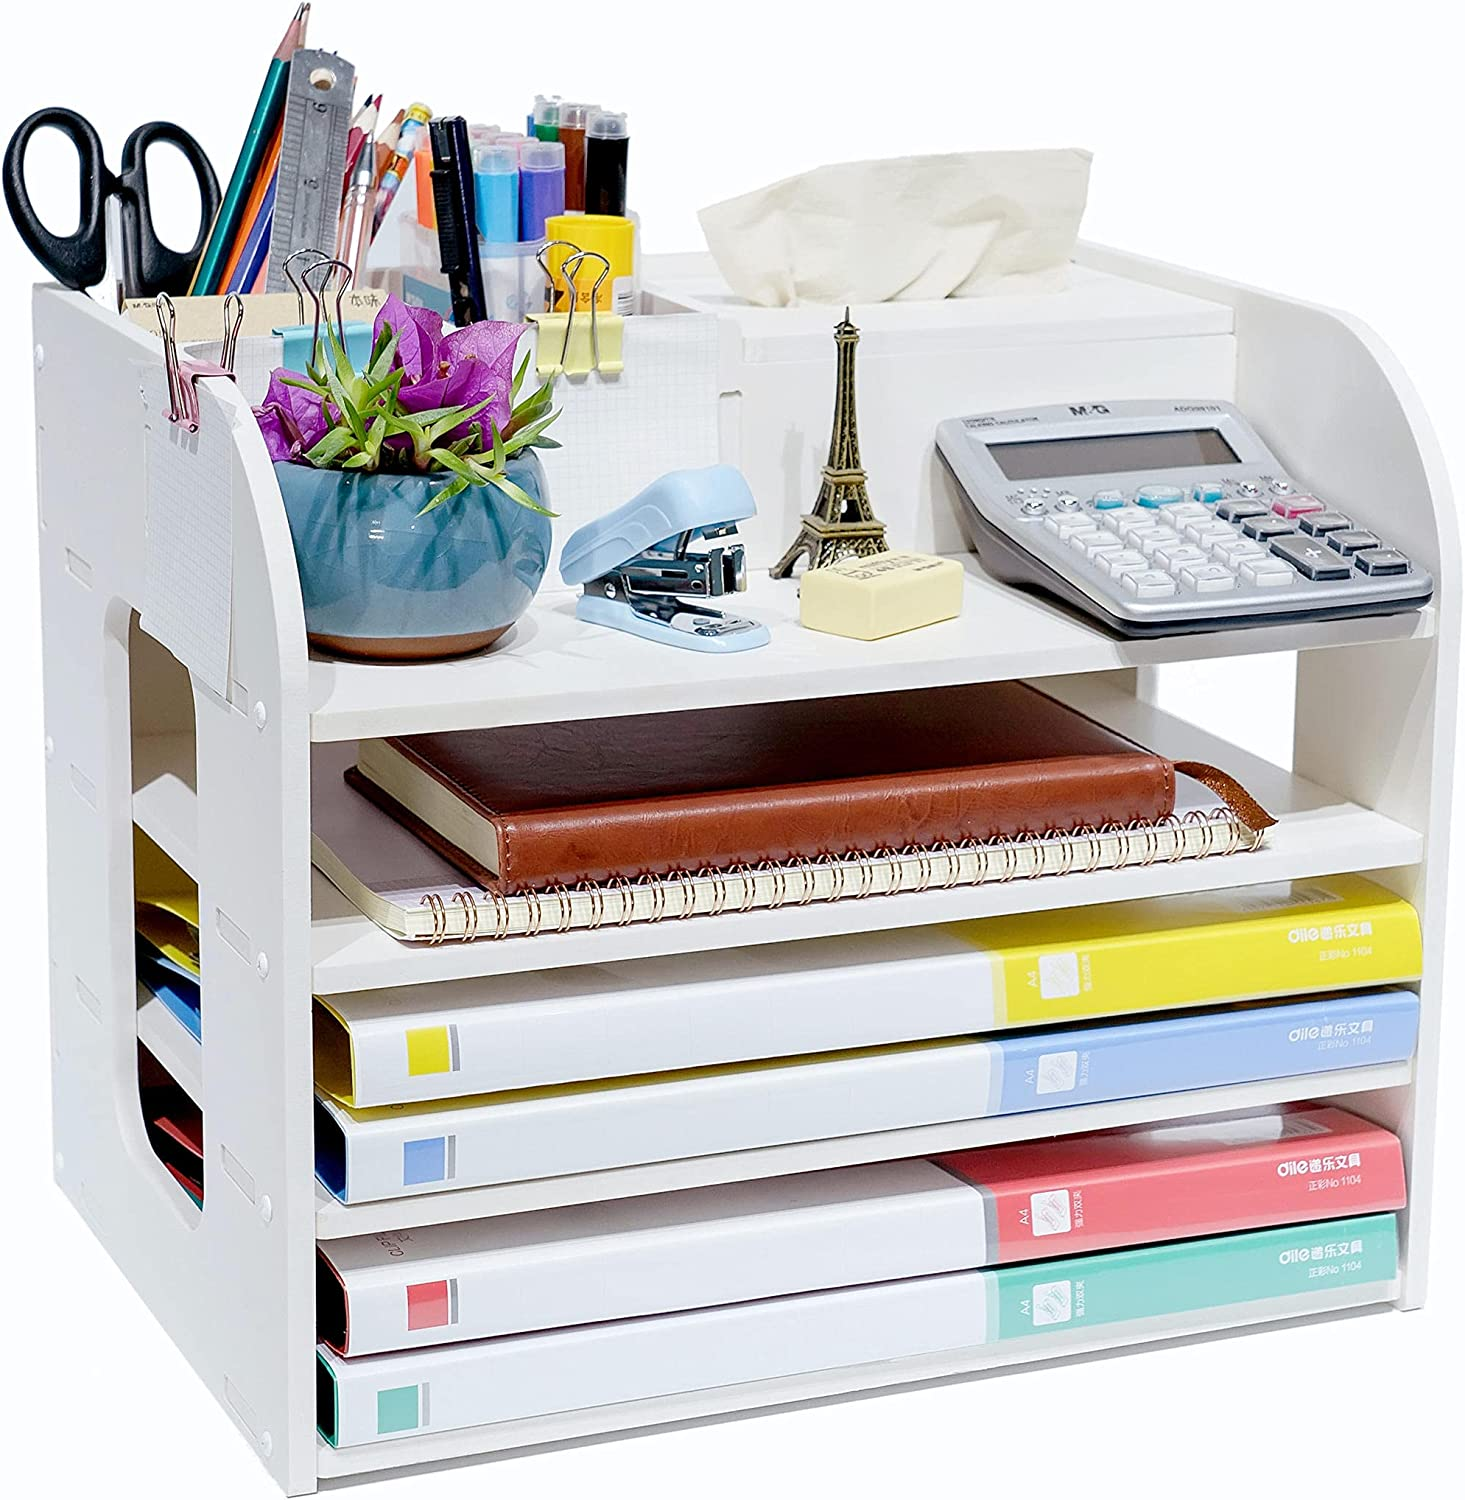 White Office Desk Drawer Ranking integrated 1st place Organizer Accessories Tray Paper Ma Cheap bargain and